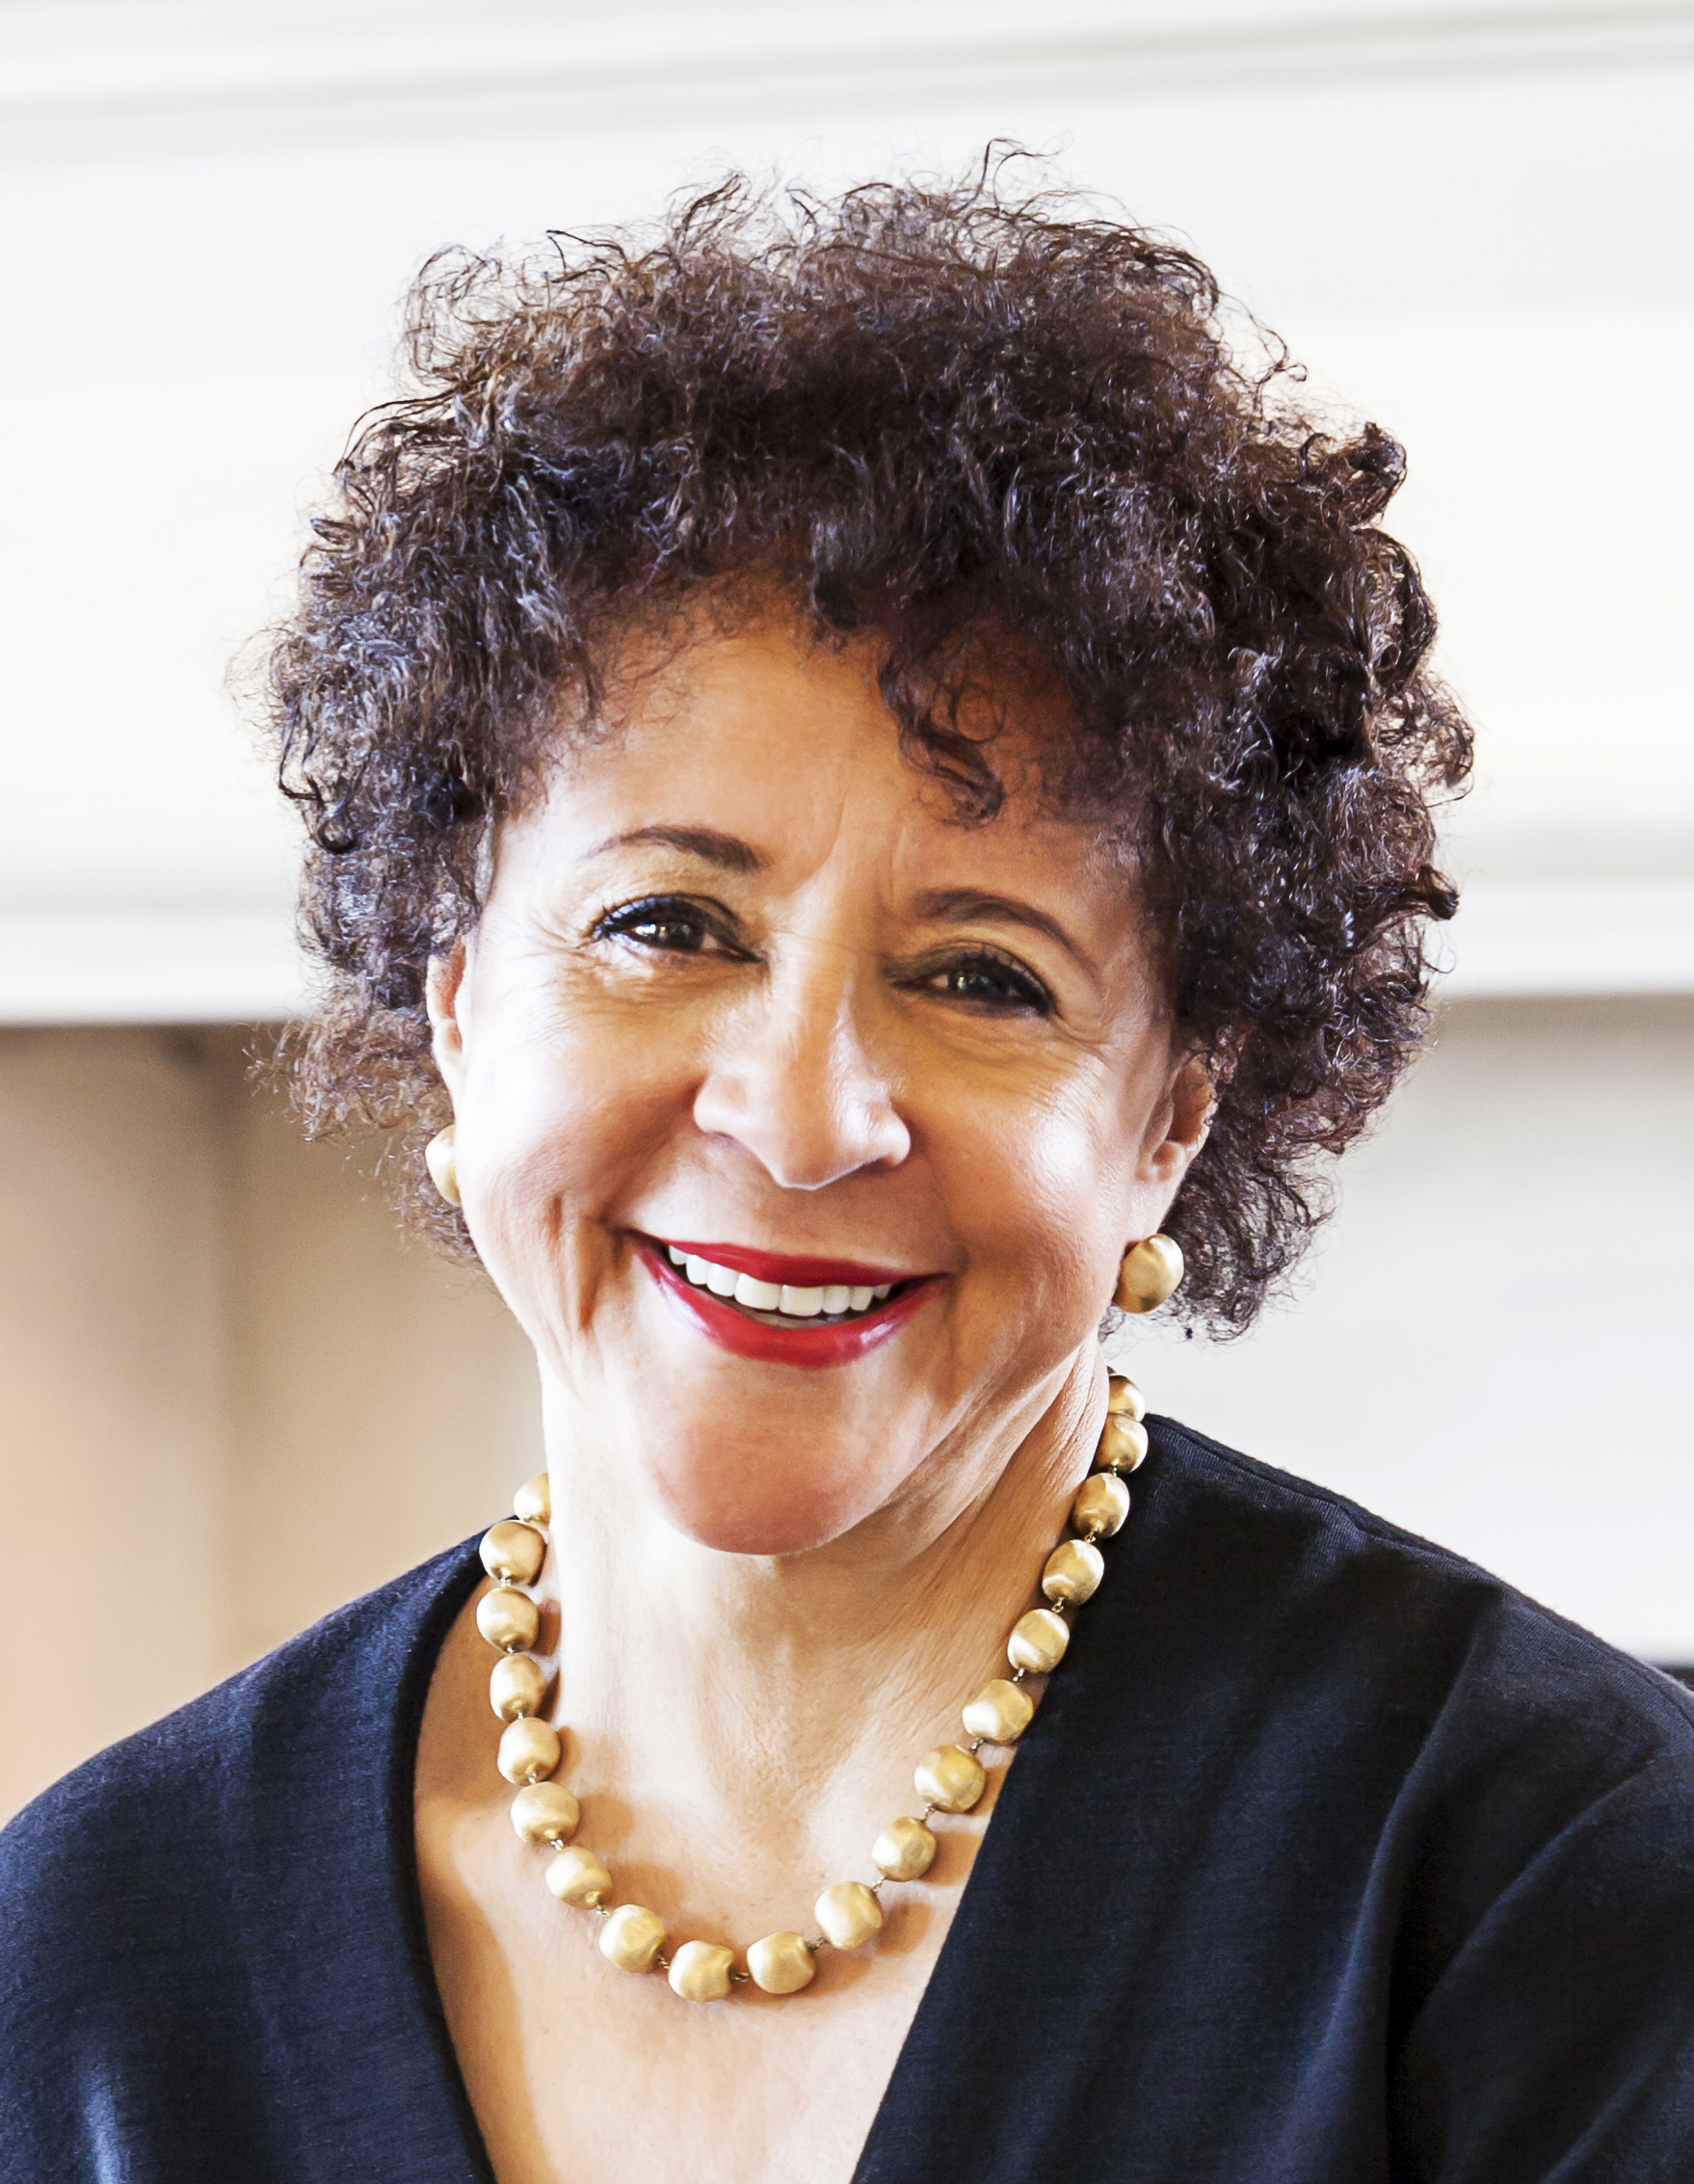 Sheila C. Johnson, Entrepreneur; Founder & CEO of Salamander Hotels & Resorts